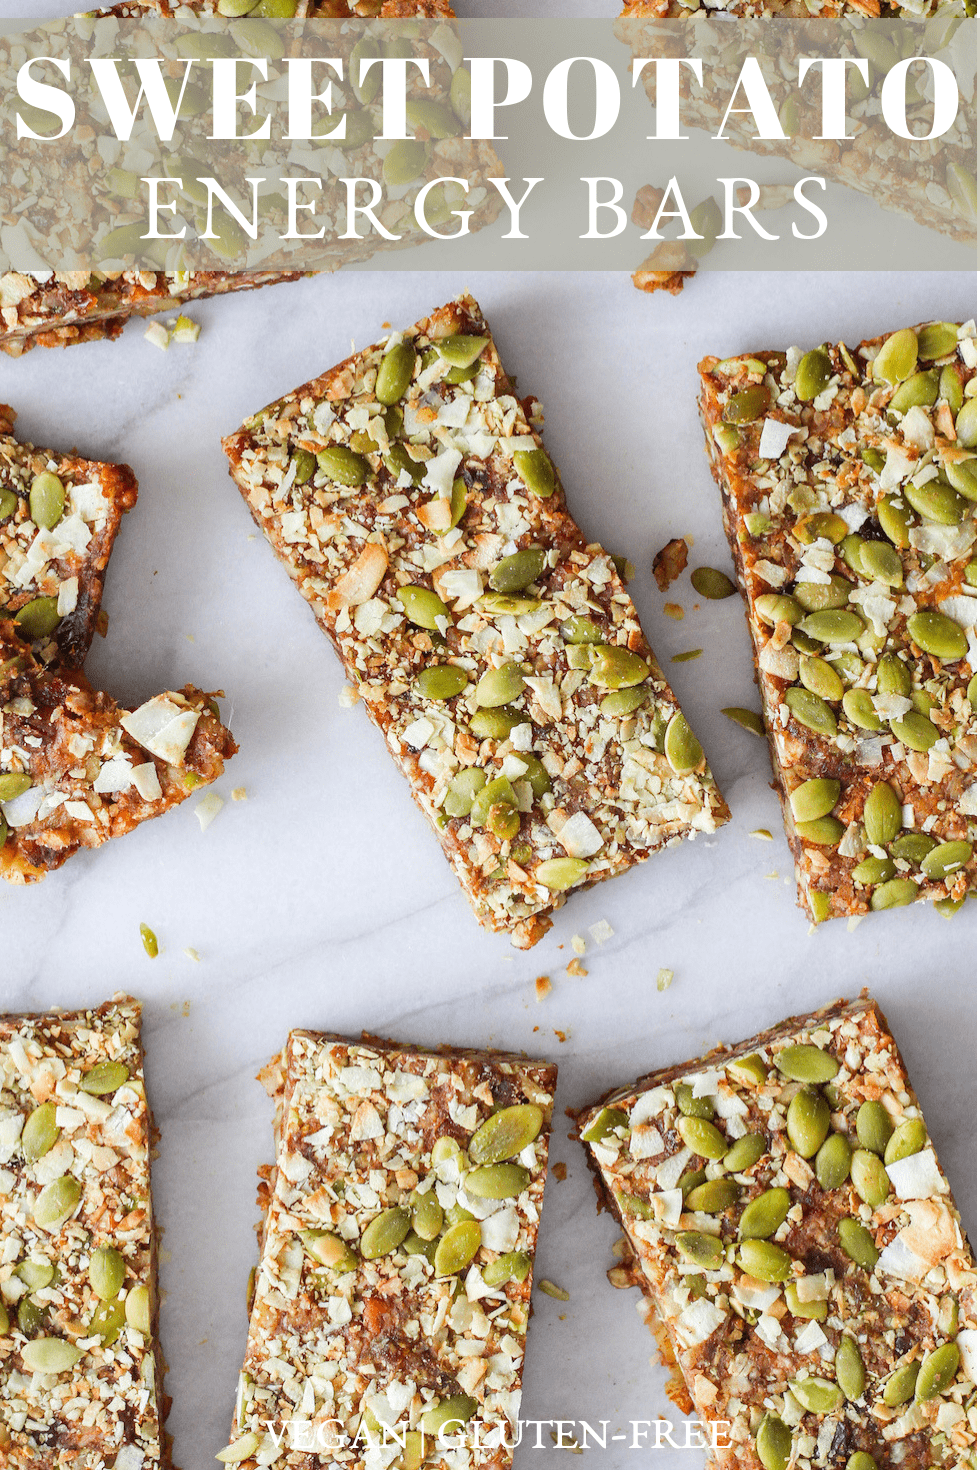 Sweet Potato Energy Bars are a healthy, on-the-go snack made with natural ingredients and cozy, fall spices. This recipe is vegan and gluten-free! #gratefulgrazer #energybars #sweetpotato #plantbased #vegan #glutenfree